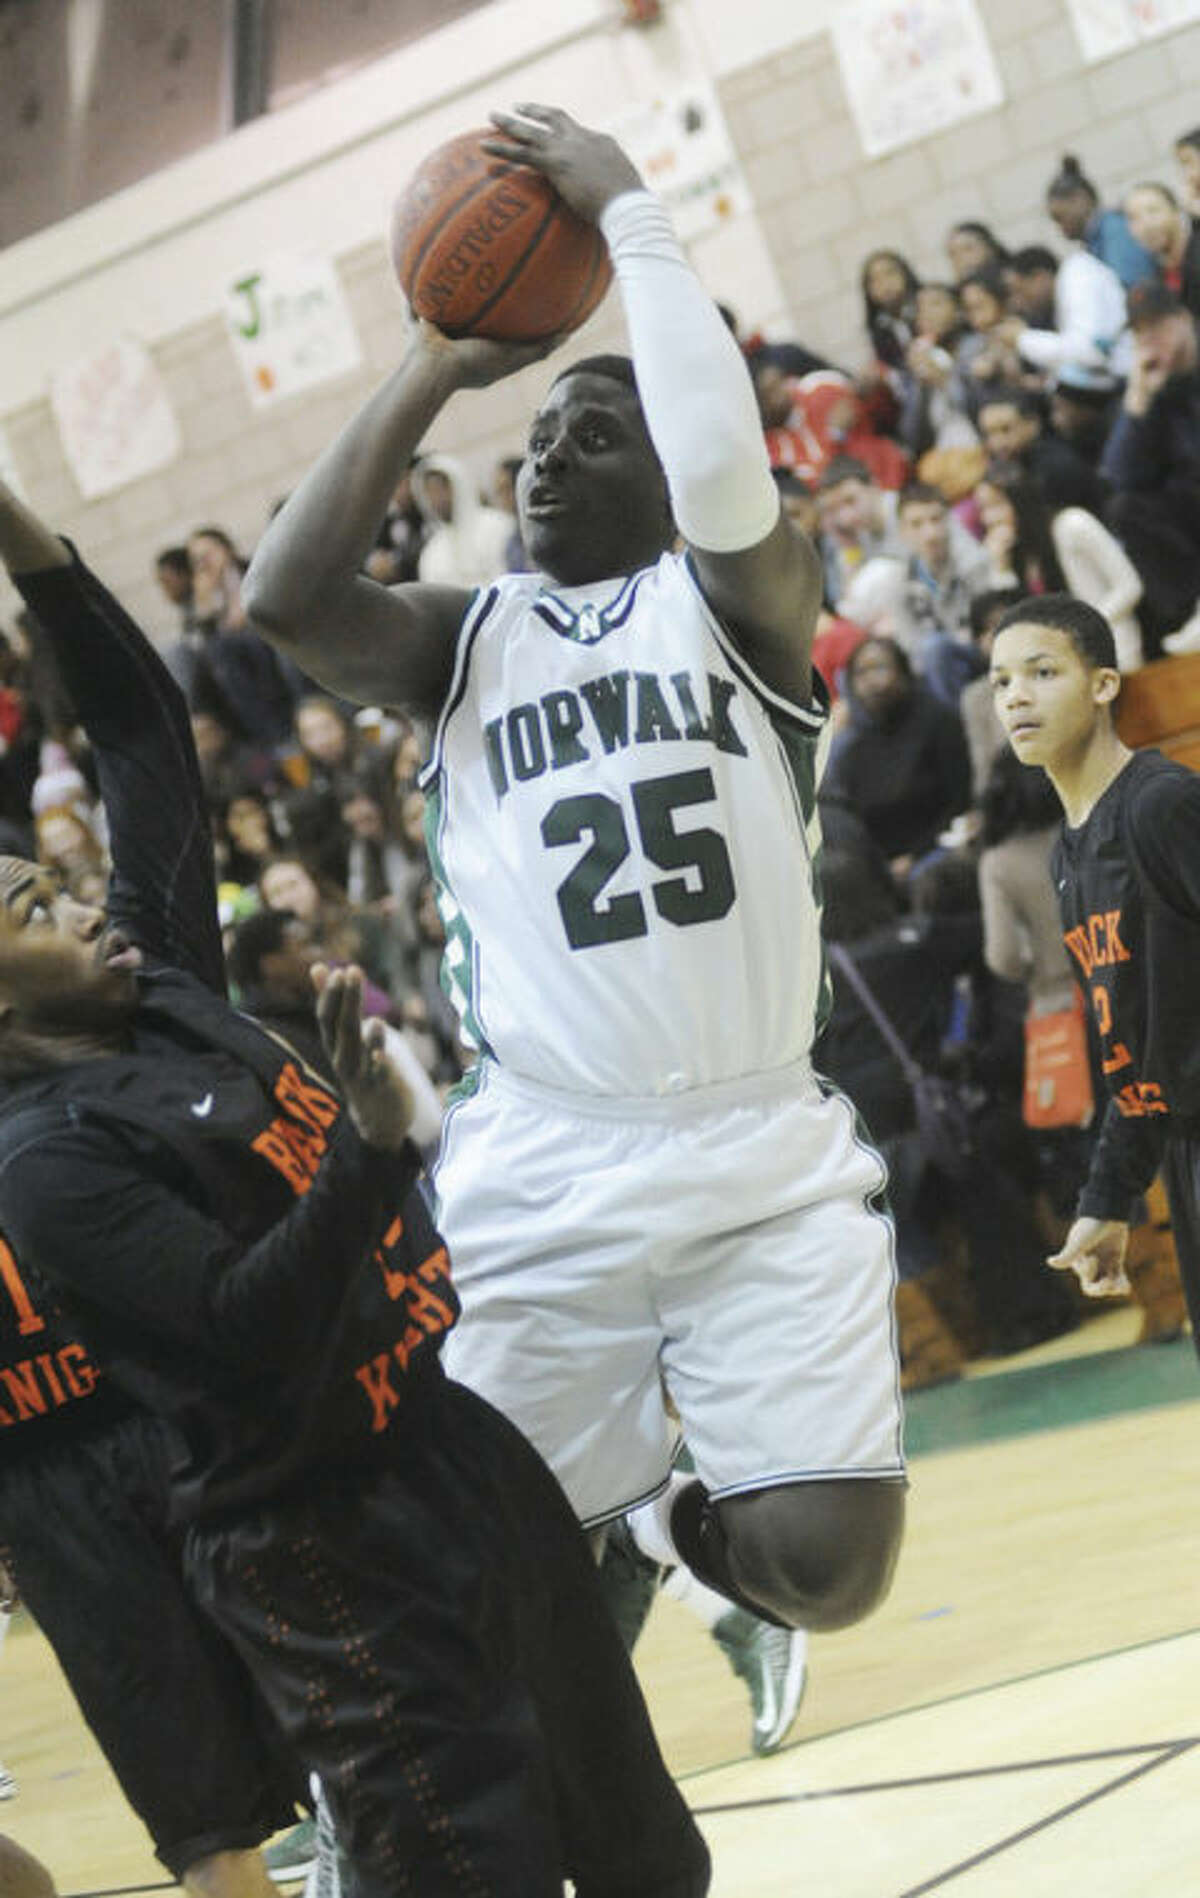 Hour photo/Matthew Vinci Norwalk's Saeed Soulemane (25) goes up for a shot over Tamarie Sterling of Stamford during Monday night's game at NHS's Scarso Gym. Soulemane had 16 points and 11 rebounds as the Bears turned back the visiting Black Knights, 82-69.